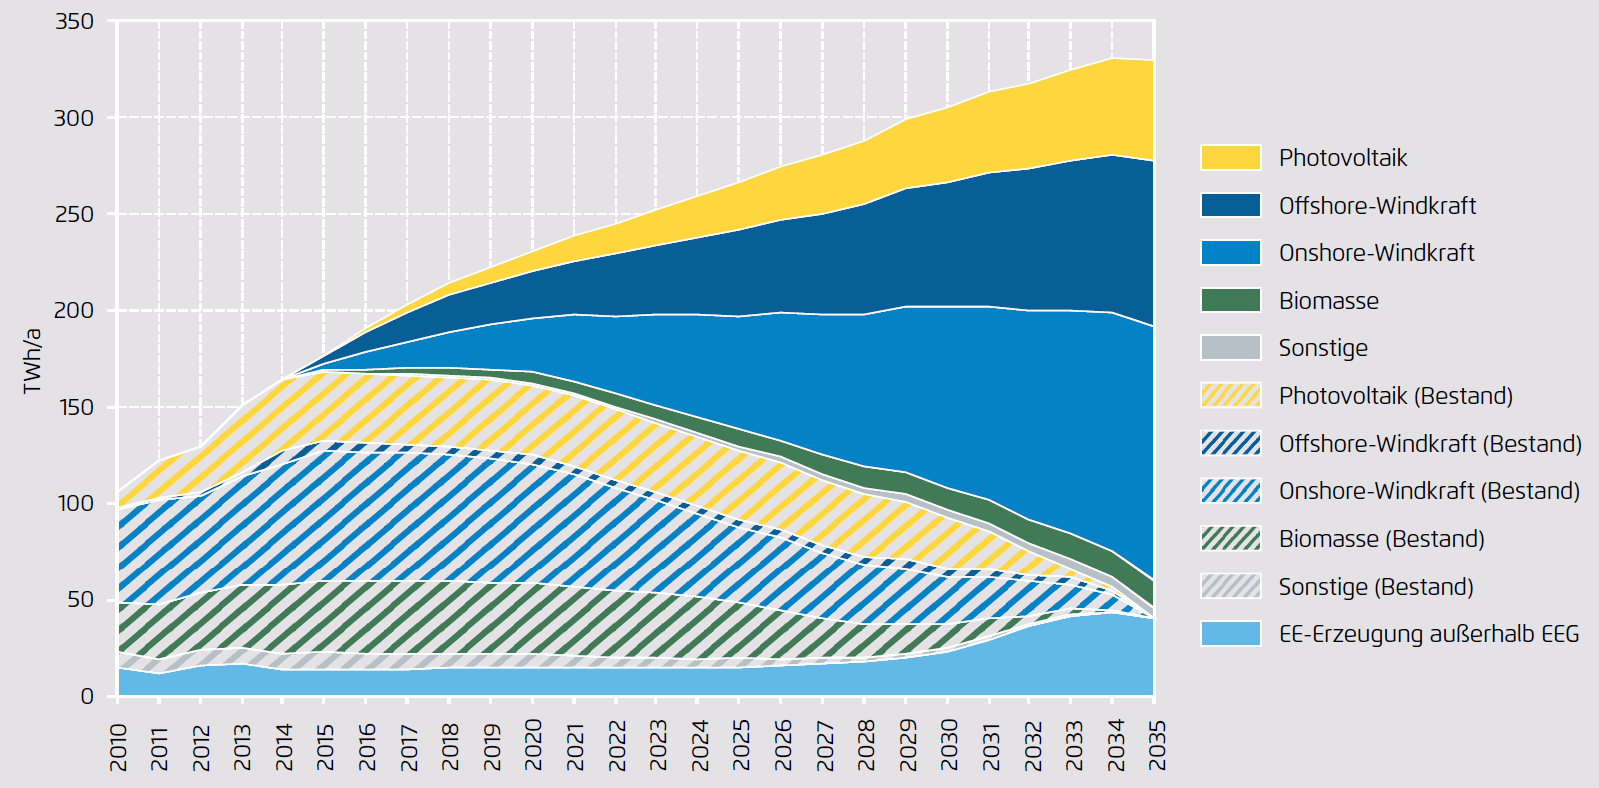 Renewable Power Production in Germany by renewable technology